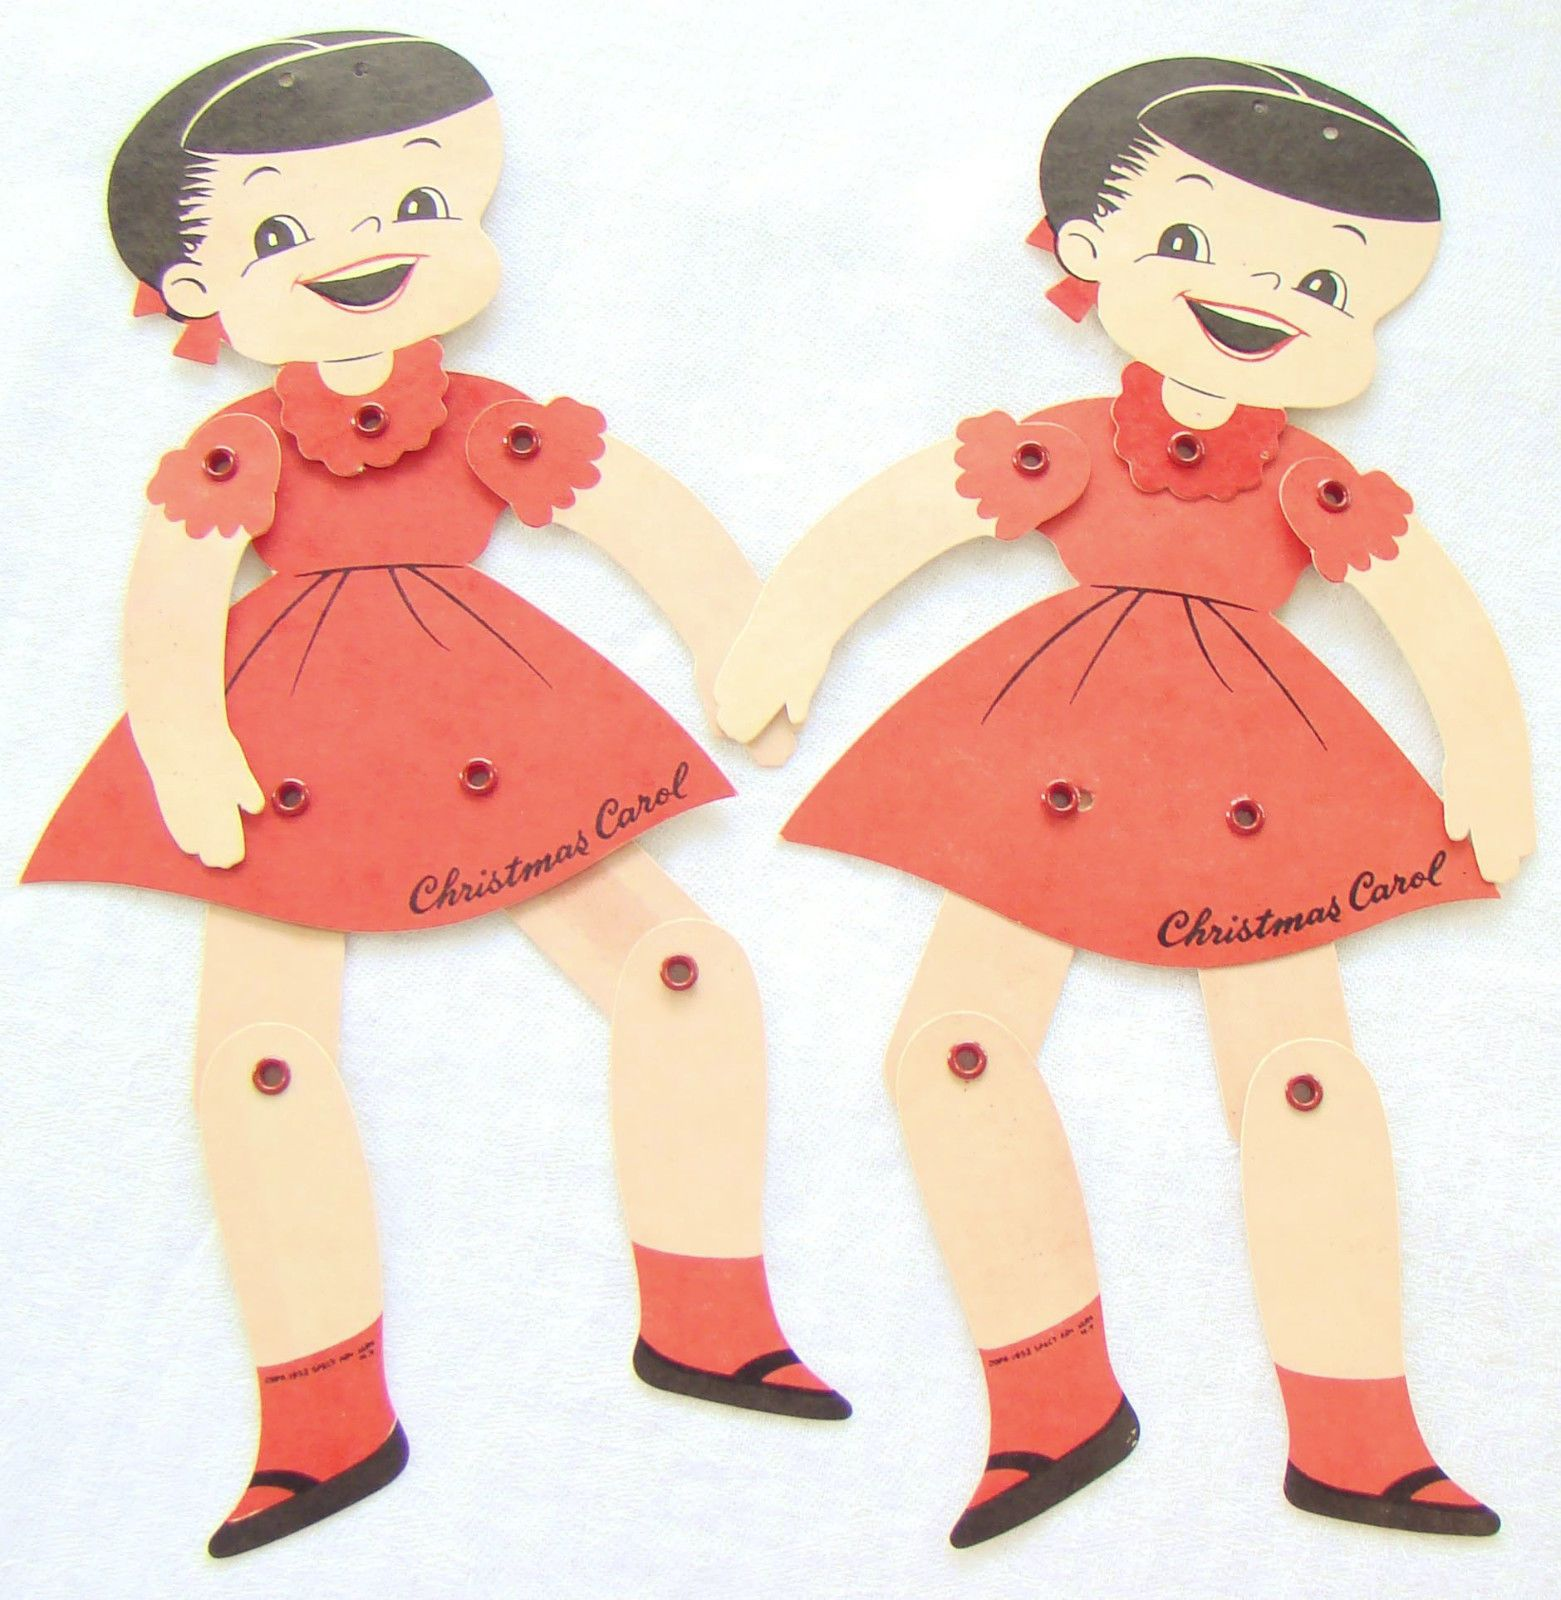 Two Authentic Vintage 'Christmas Carol' Retro Dancing Paper Puppets | eBay